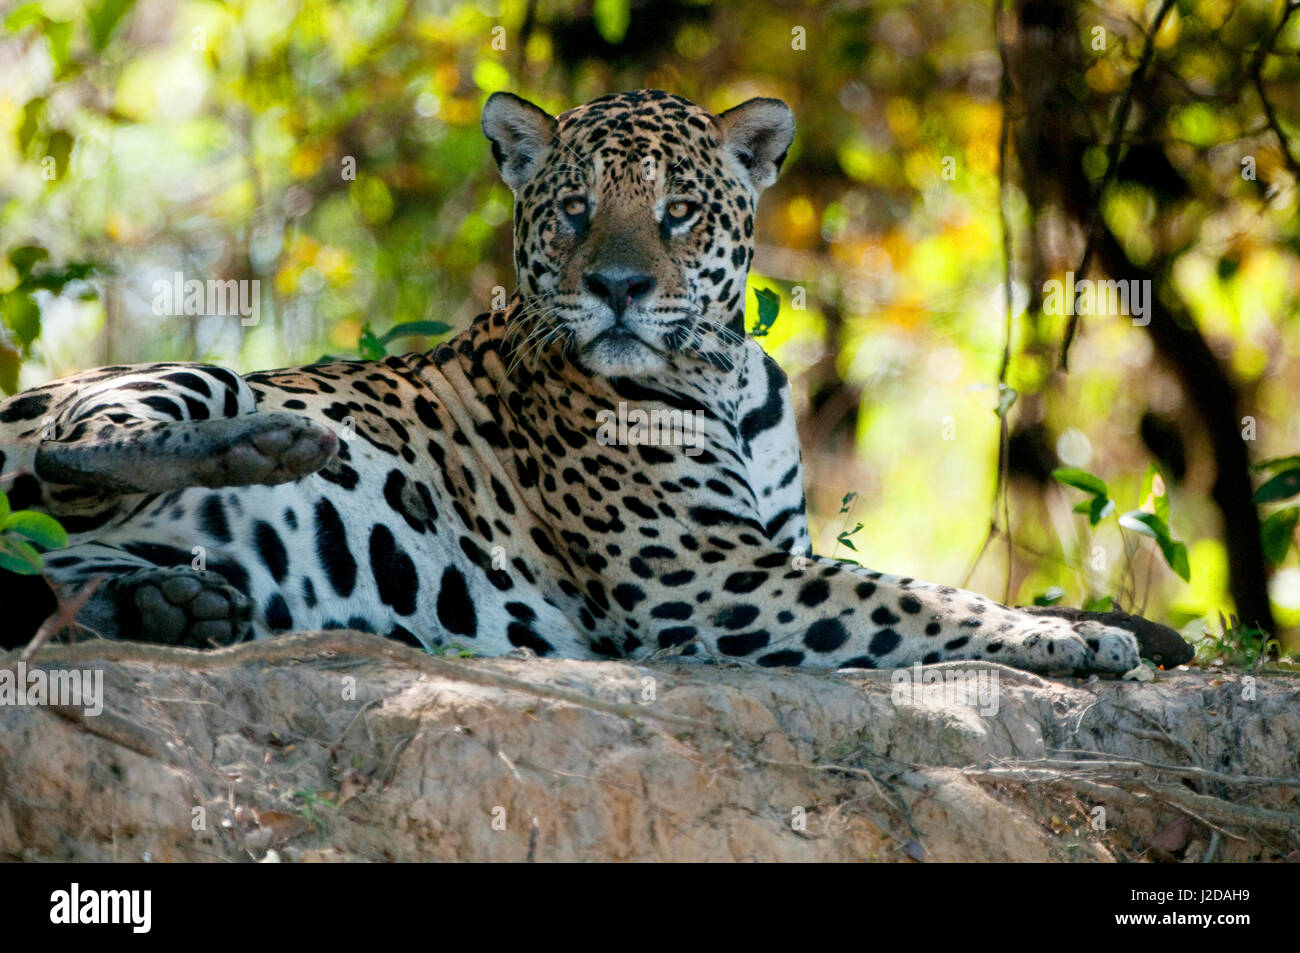 Jaguar on the bank of a small Neotropic river - Stock Image